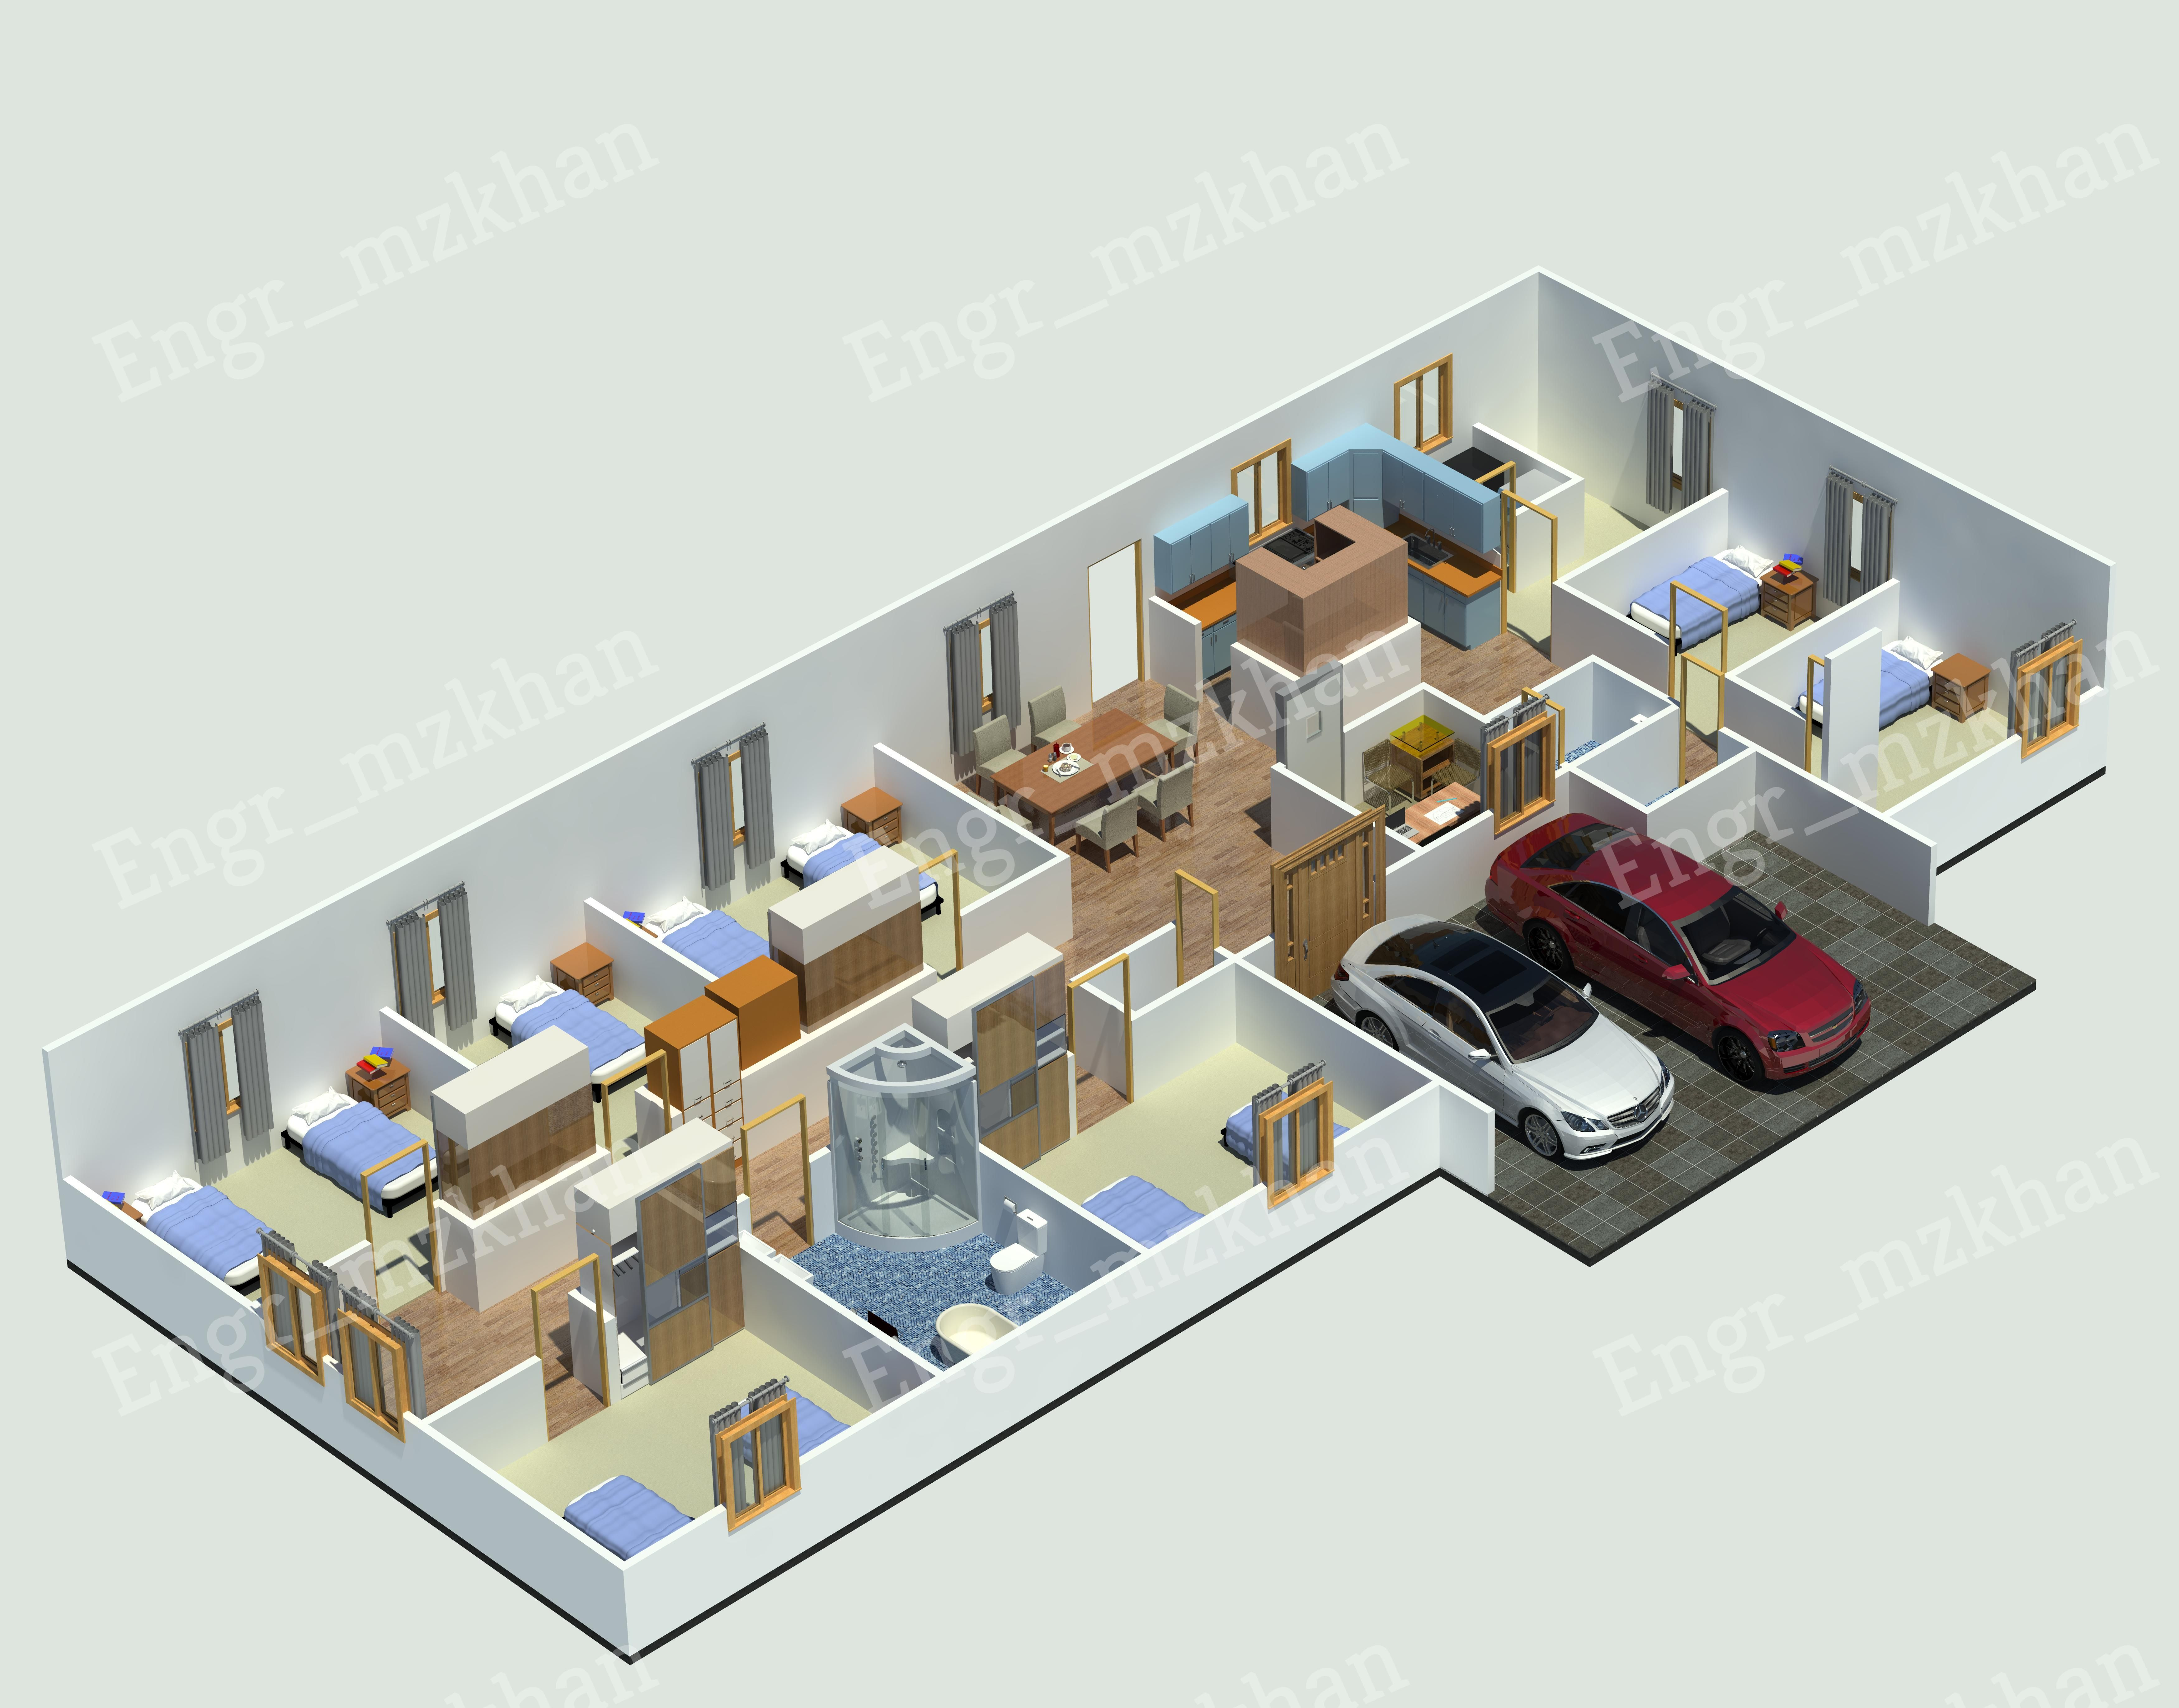 Engr Mzkhan I Will Design Architecture 2d And 3d Floor Plan 3d Visualization For 10 On Fiverr Com In 2020 Architecture Design Interior Architecture Design Floor Plans